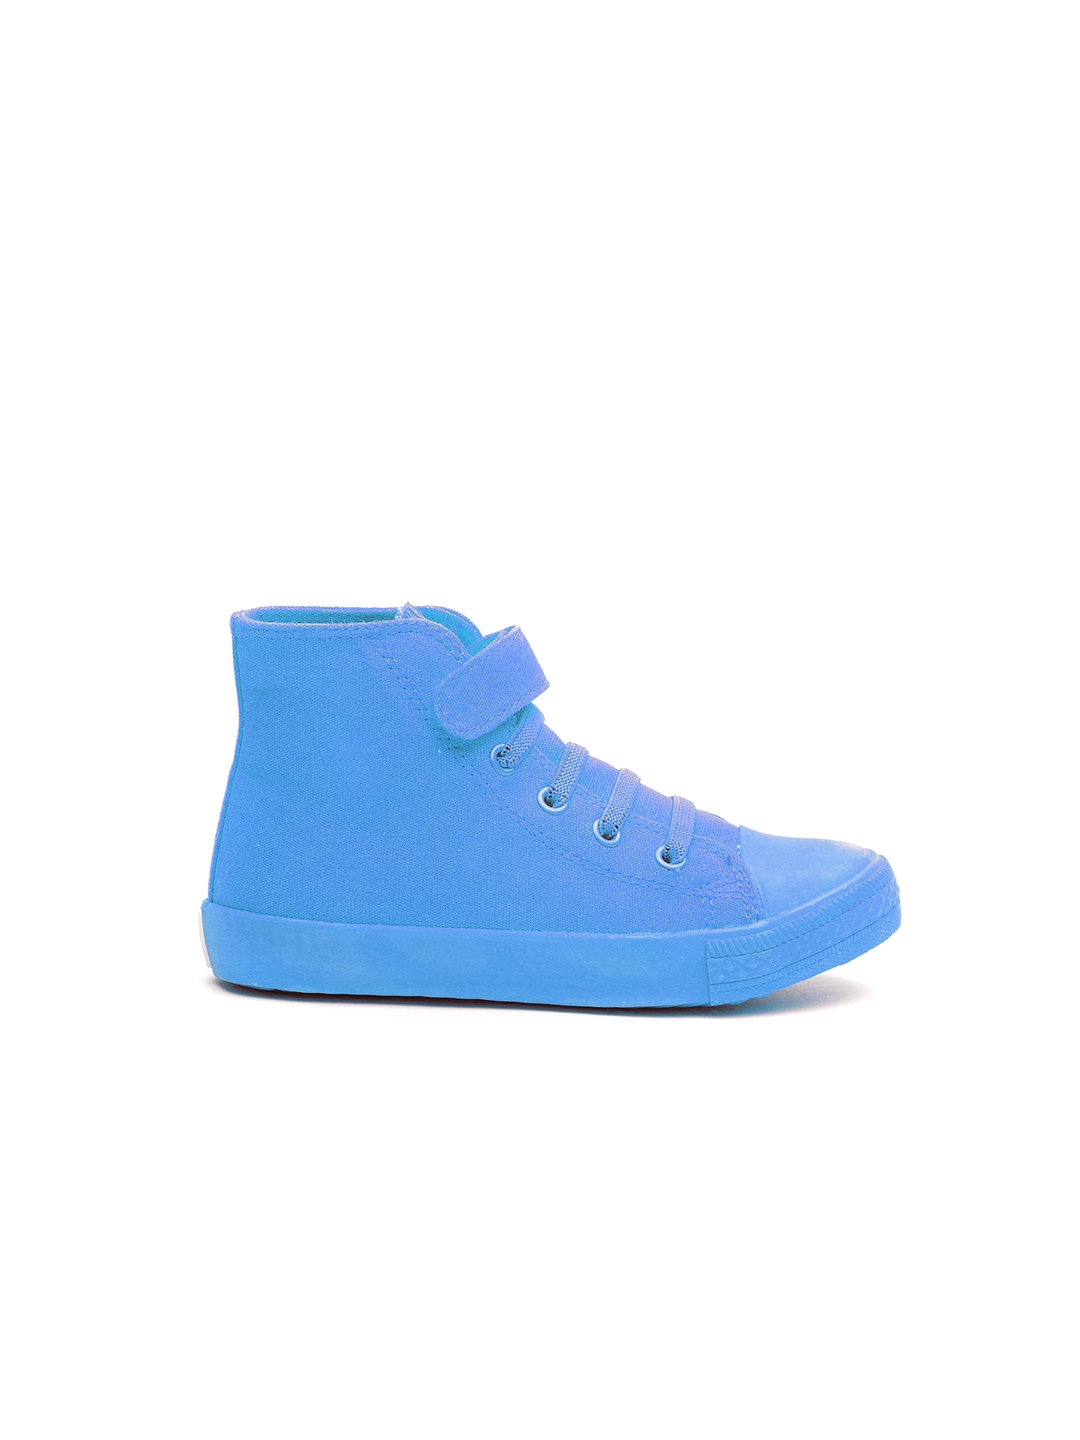 0f008ec60f35 Buy United Colors Of Benetton Boys Blue Solid Sneakers - Casual ...